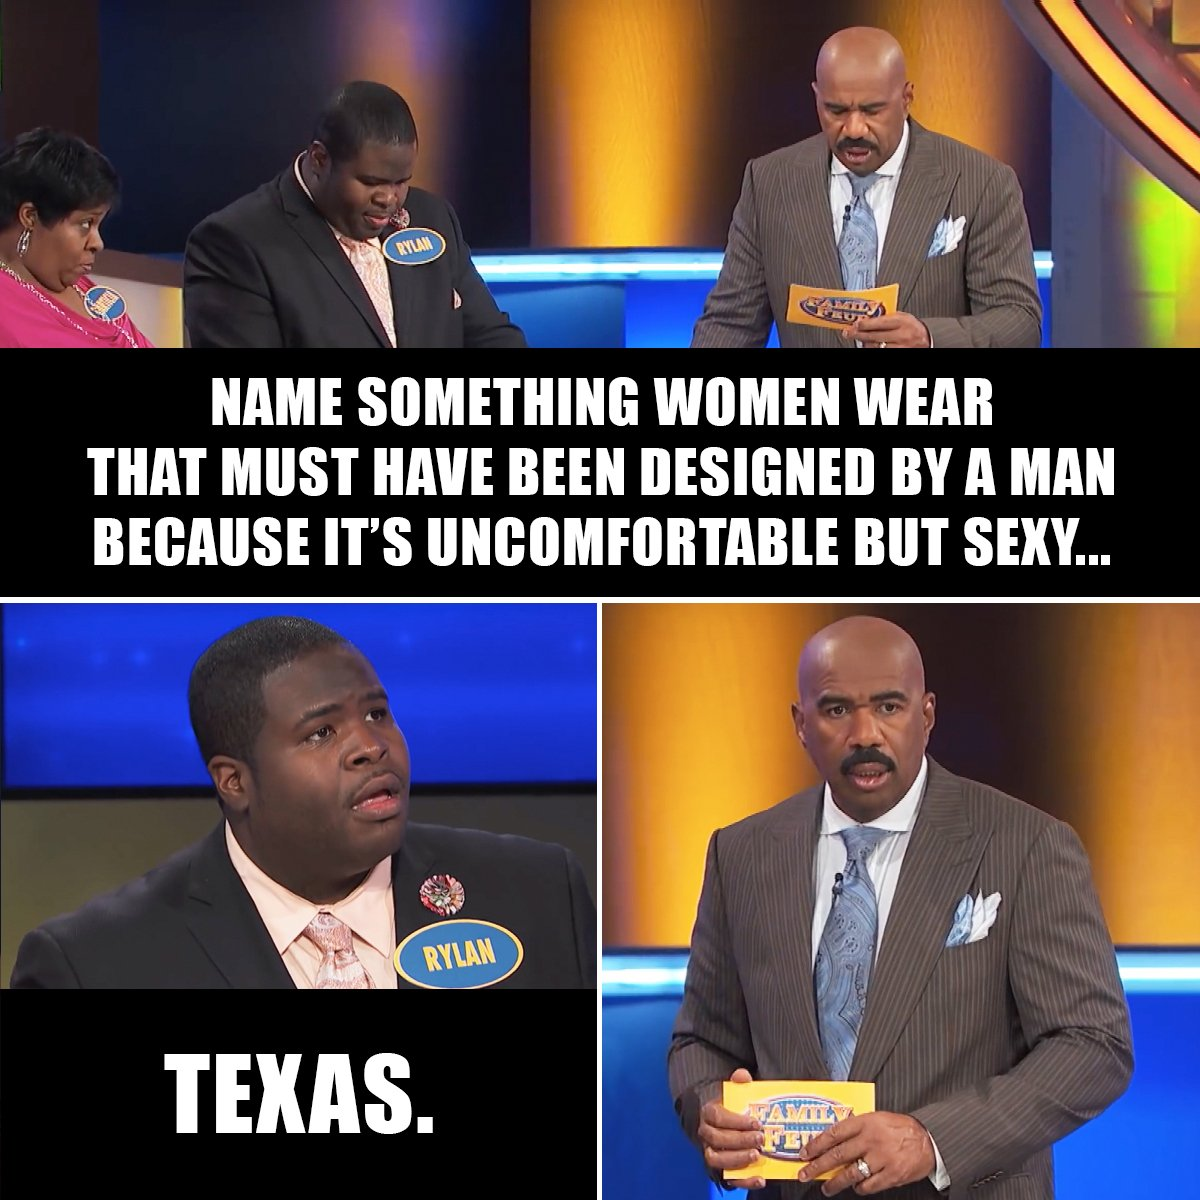 Name something women wear that becomes uncomfortable after a while?